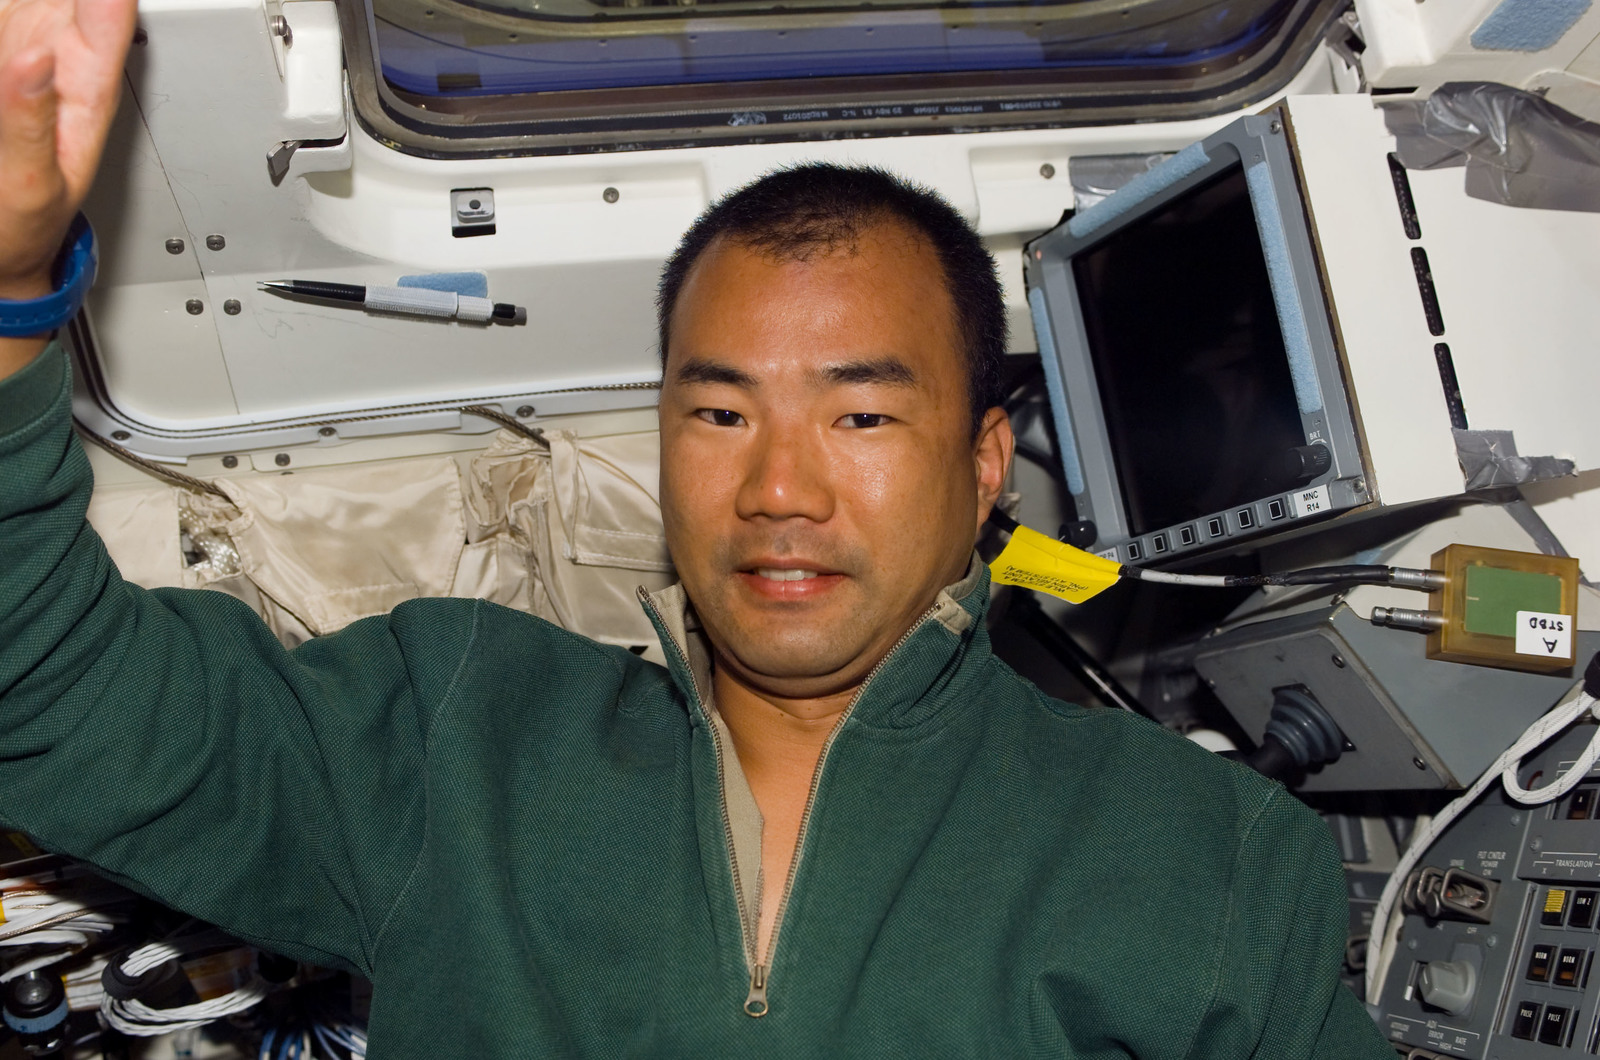 S114E5191 - STS-114 - STS-114 Mission specialist Soichi Noguchi on flight deck with drink packet